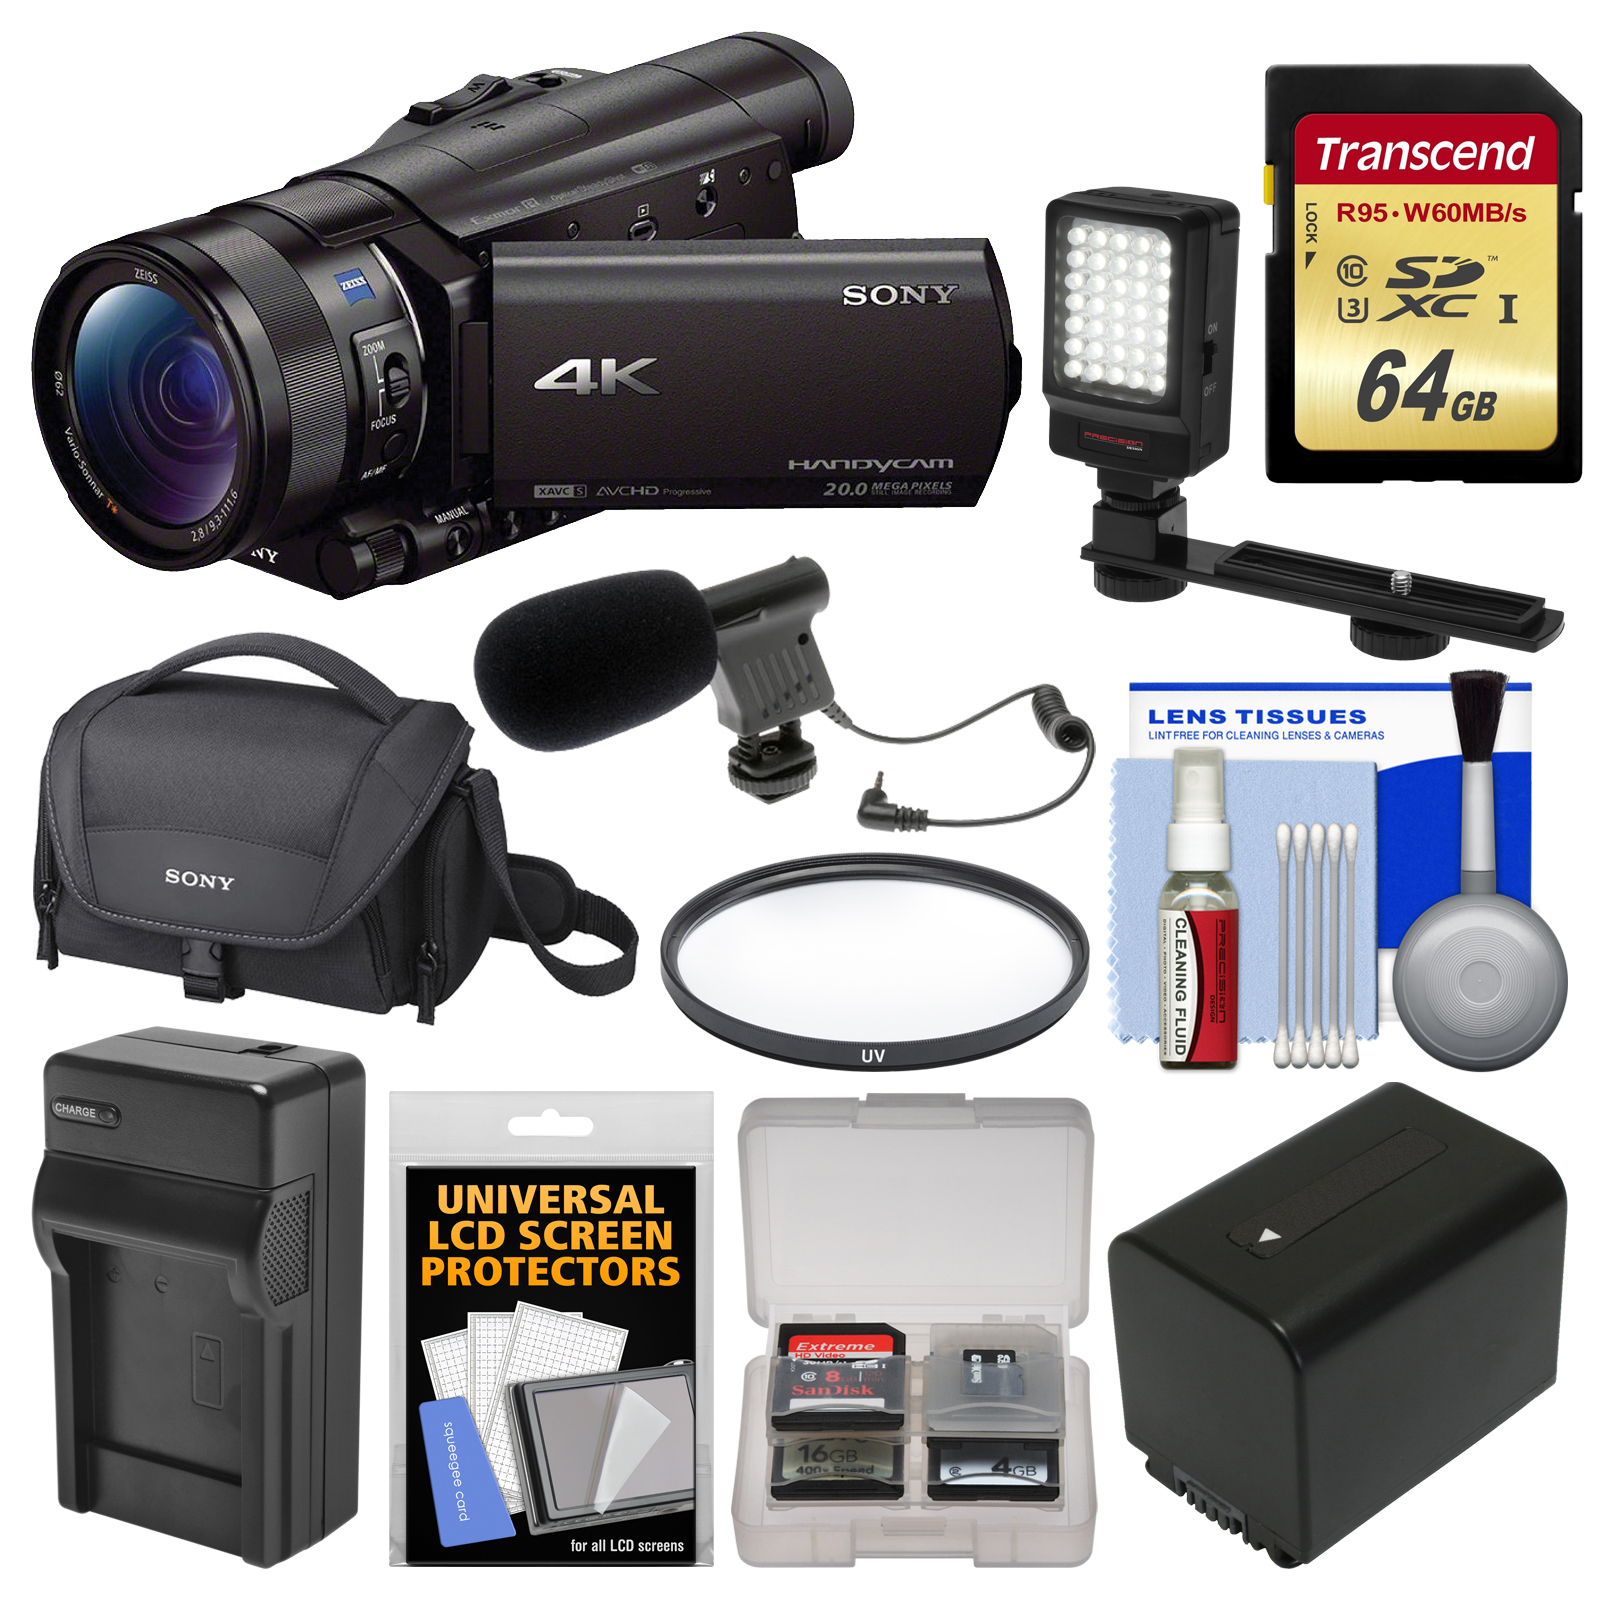 Sony Handycam FDR-AX100 Wi-Fi 4K HD Video Camera Camcorder with 64GB Card + Case + LED Light + Battery &... by Sony